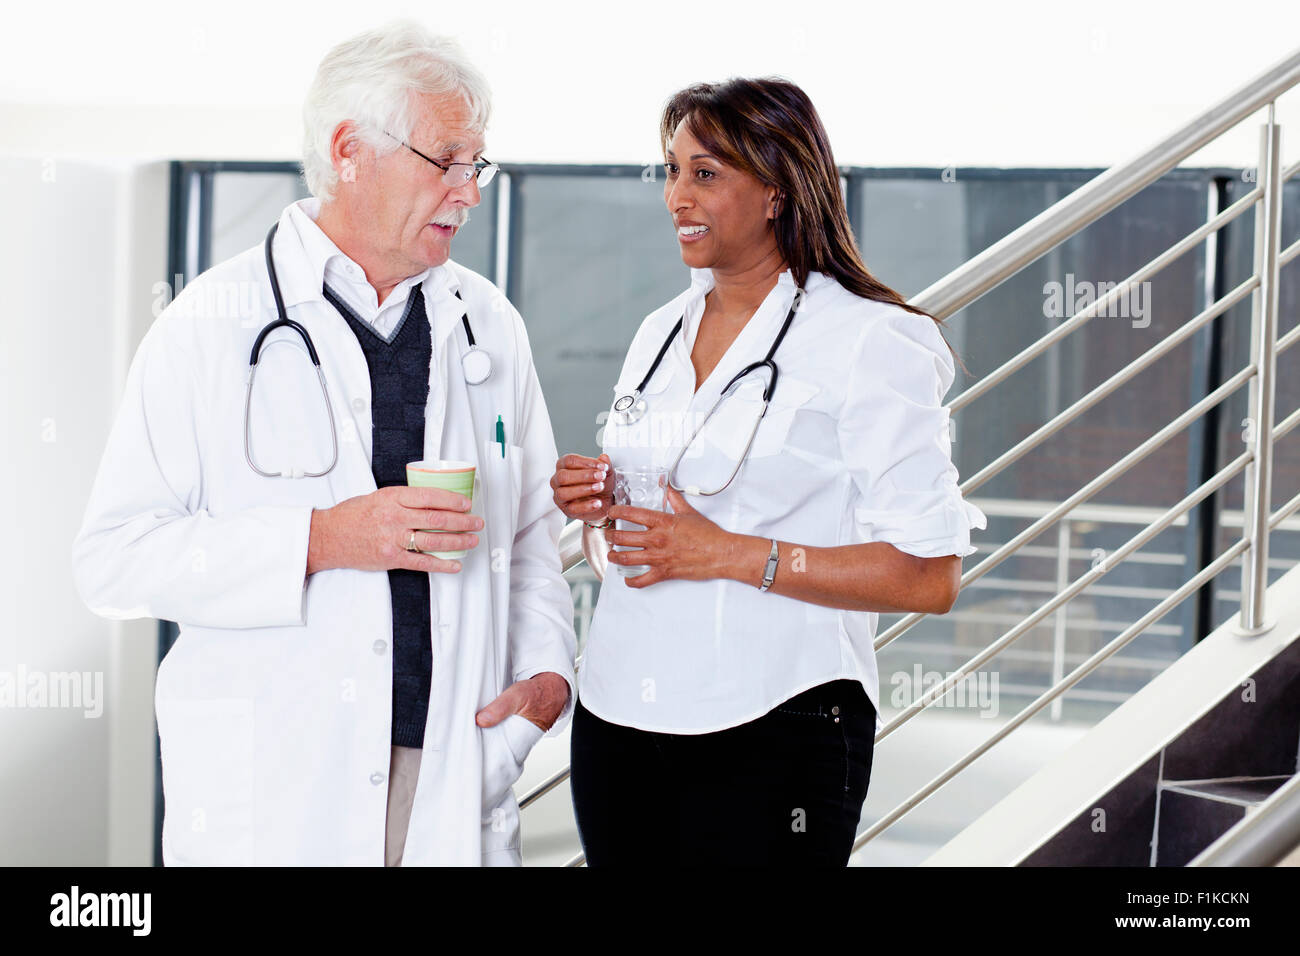 Two doctors talking - Stock Image